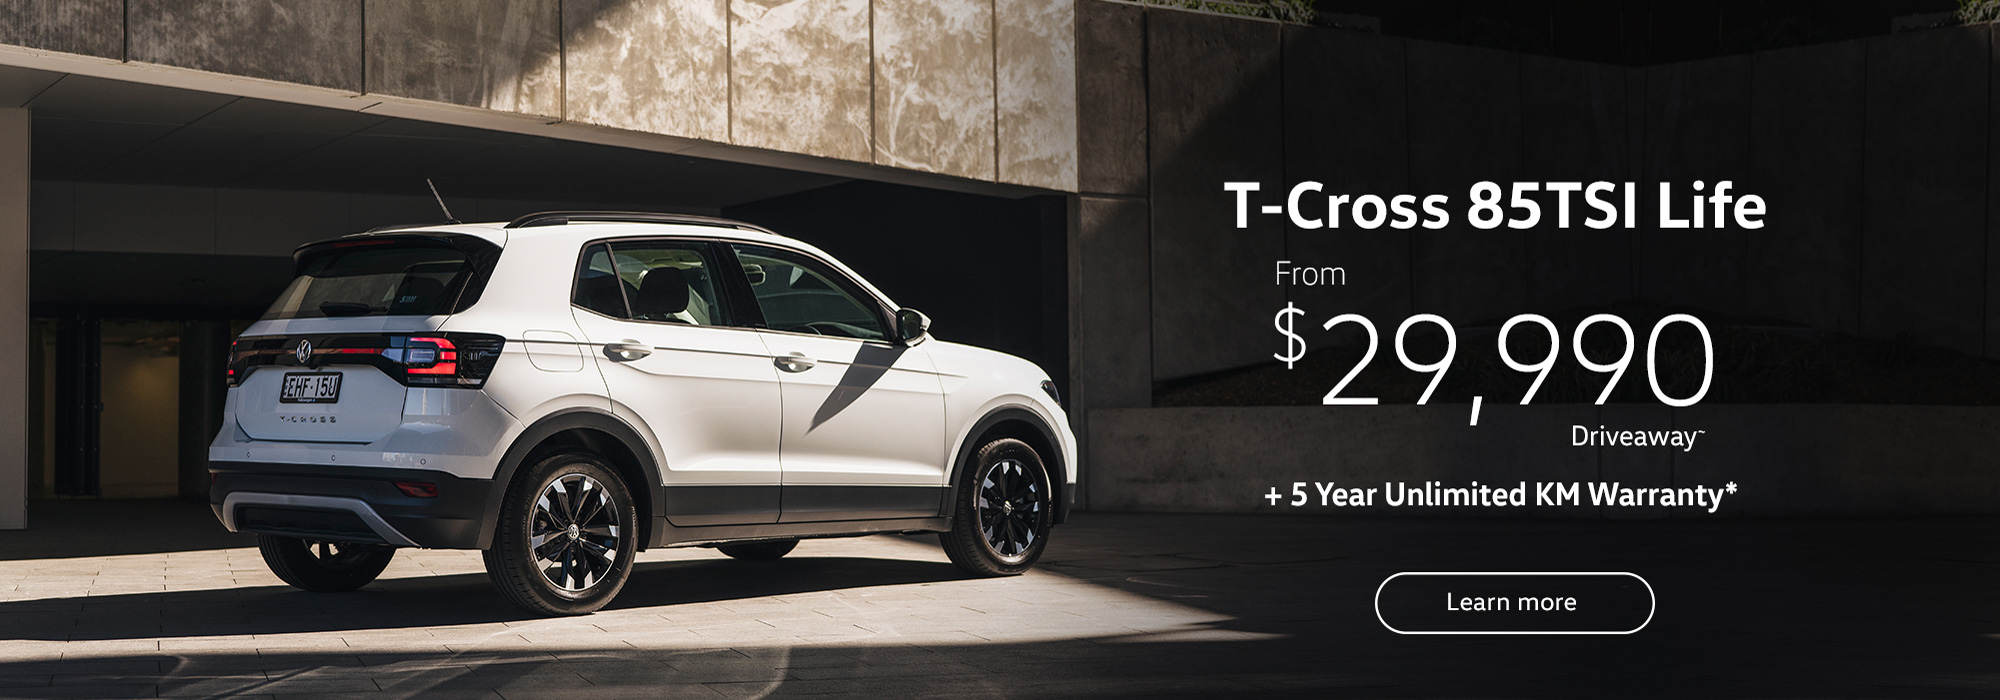 T-Cross from $29,990 Drive Away